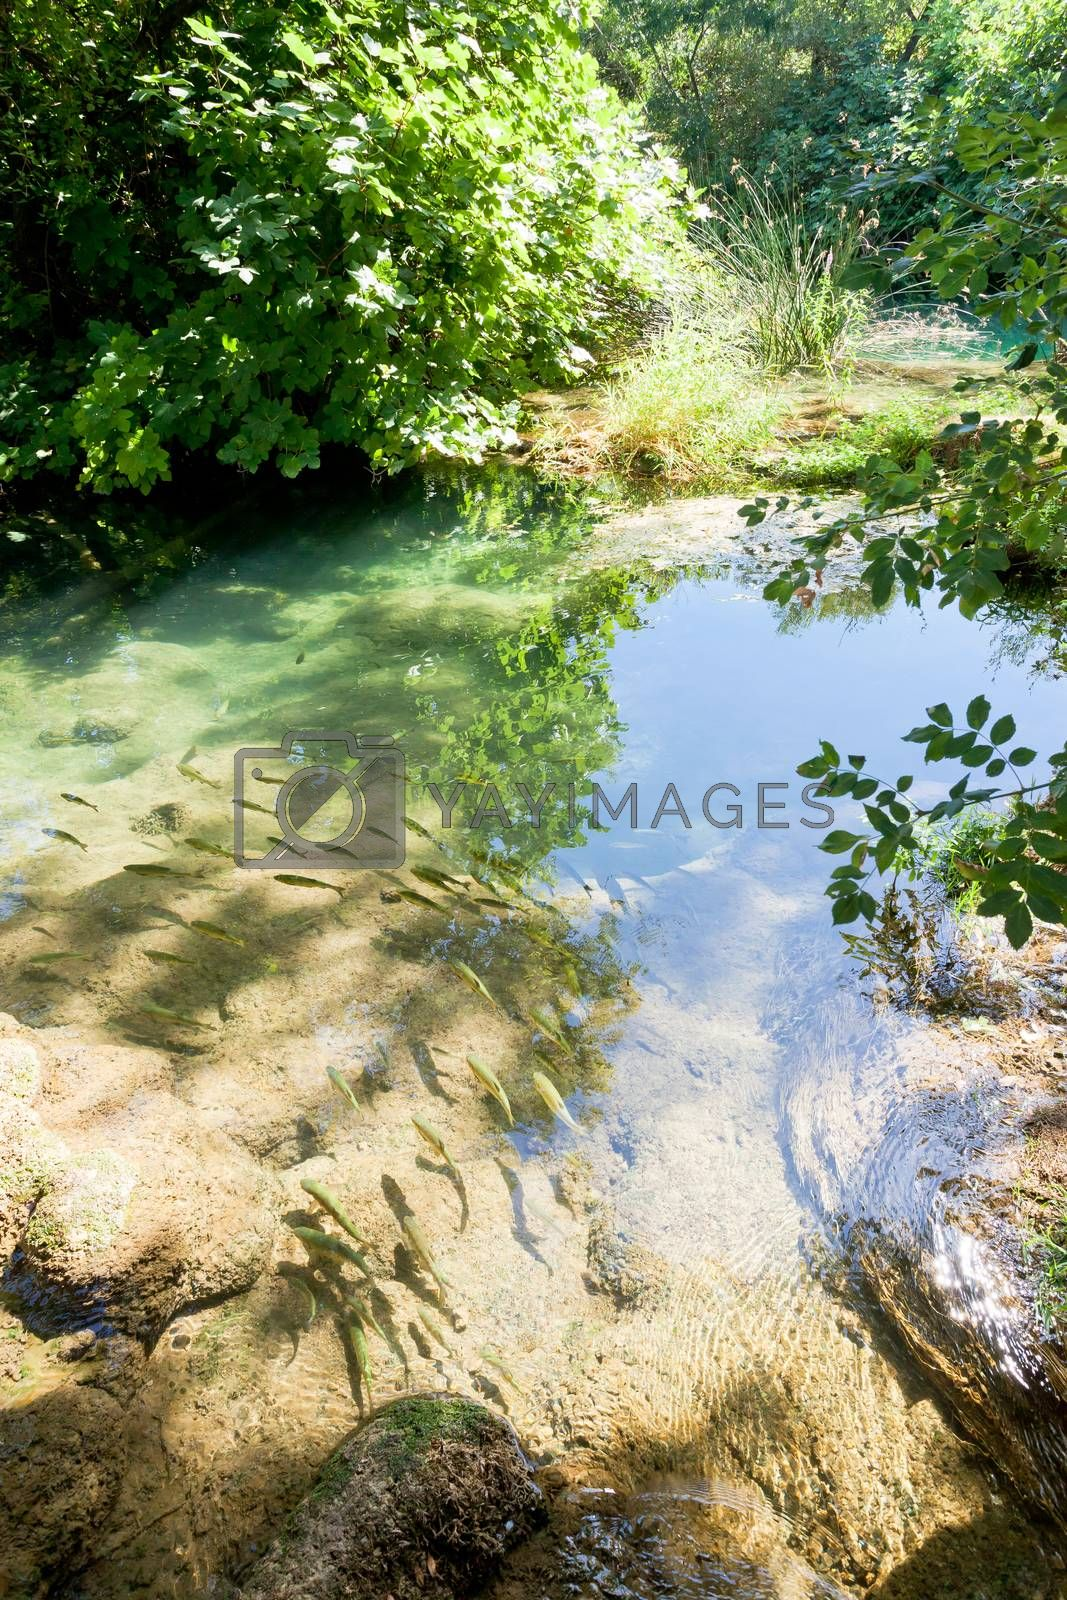 Krka, Sibenik, Croatia, Europe - Trouts swimming in line with the courrent of Krka river